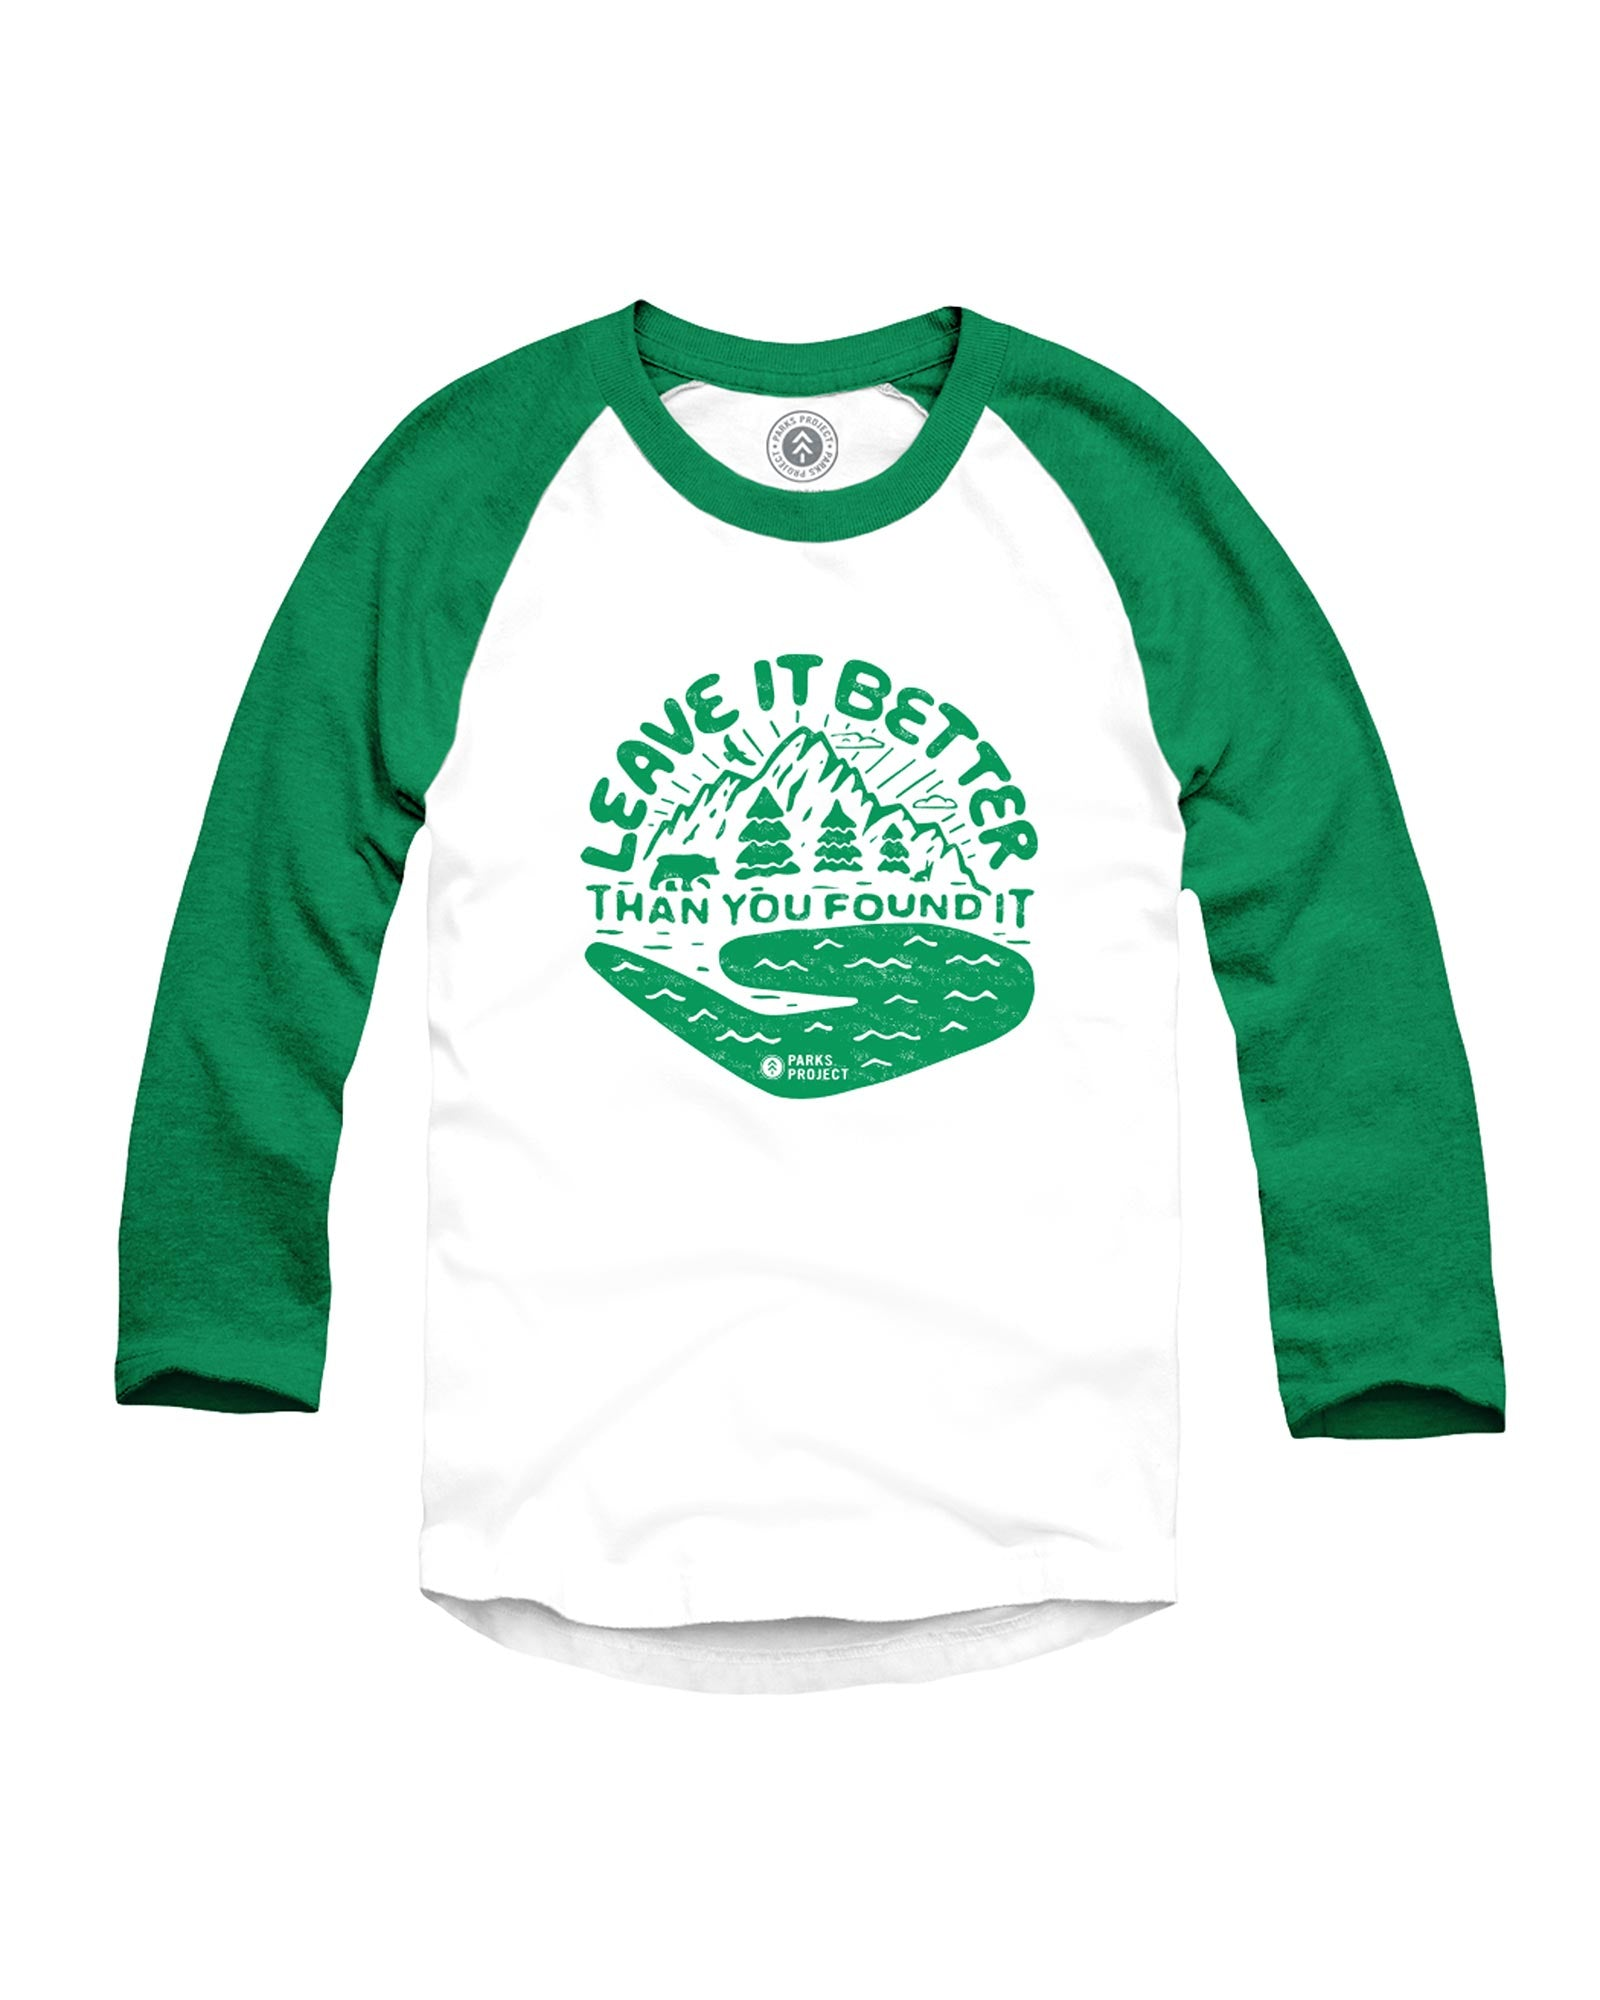 Leave it Better Hand Youth Raglan | Parks Project | National Park Raglan